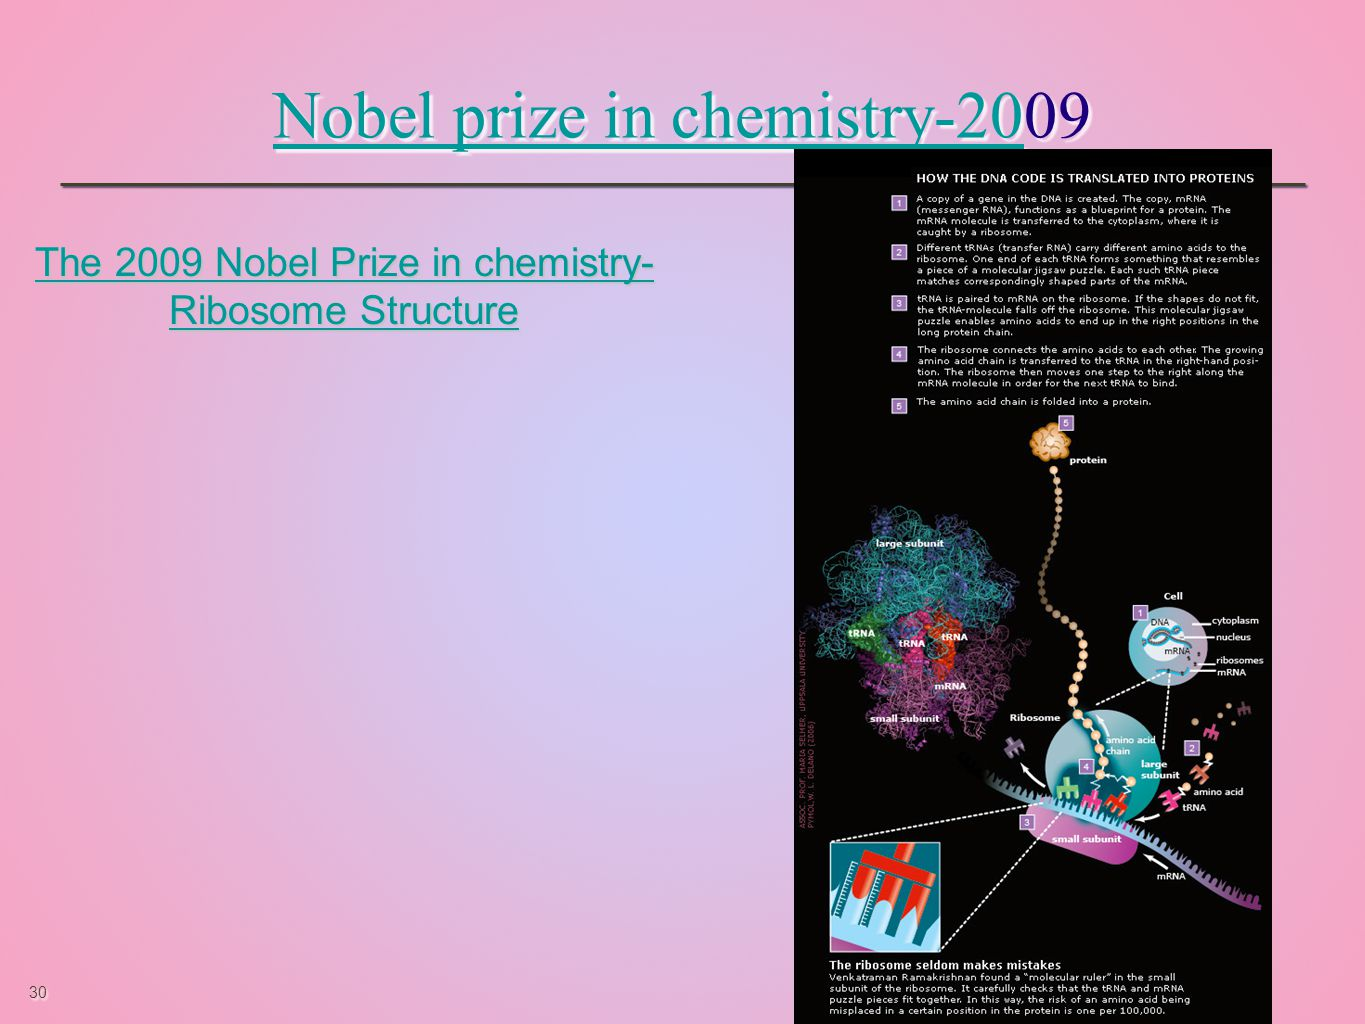 30 Nobel prize in chemistry-20Nobel prize in chemistry-2009 Nobel prize in chemistry-20Nobel prize in chemistry-2009 The 2009 Nobel Prize in chemistry- Ribosome Structure The 2009 Nobel Prize in chemistry- Ribosome Structure